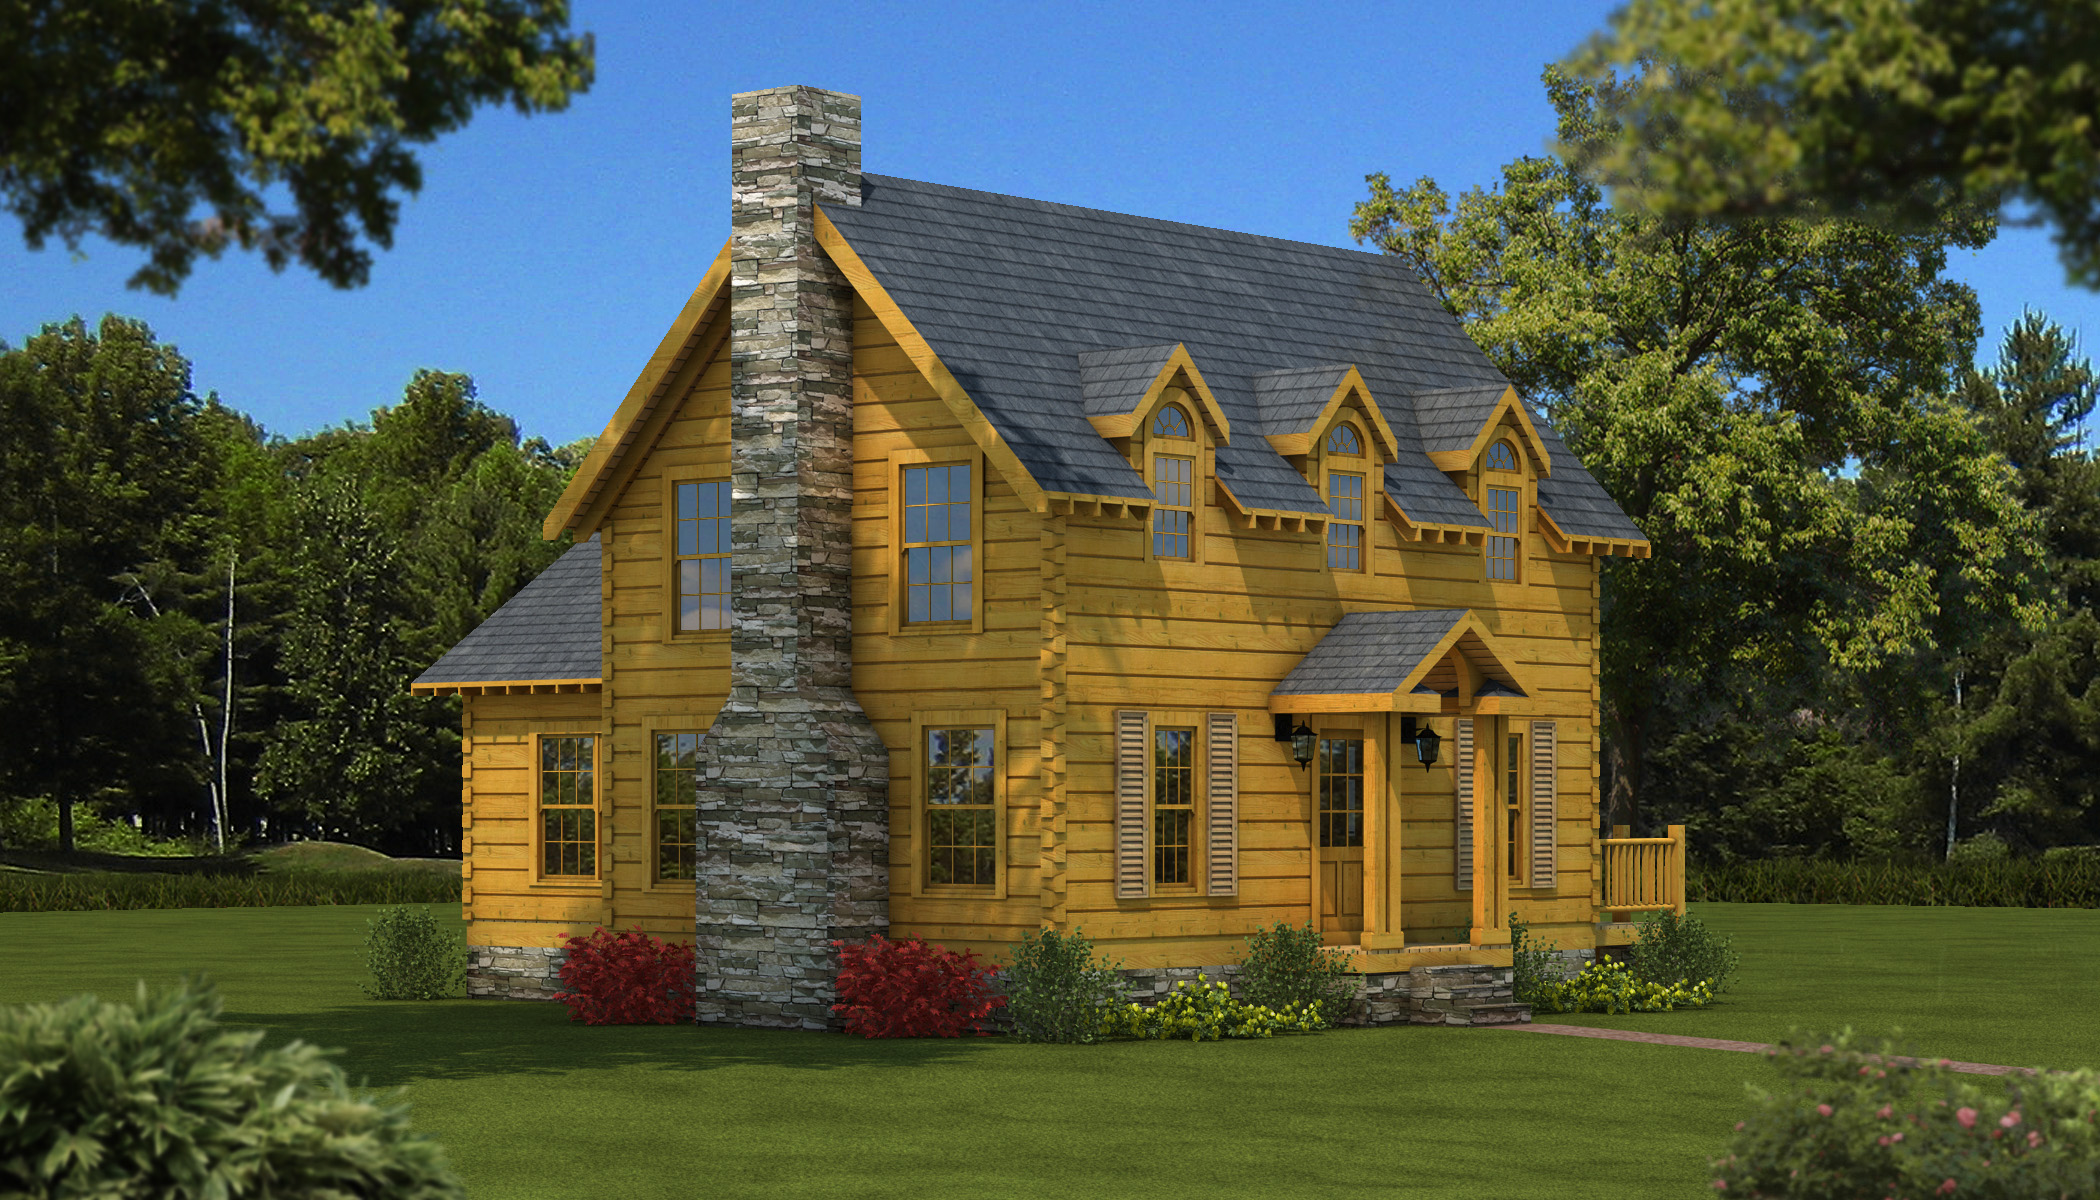 chic exterior design of Southland Log Homes with dark roof and natural stone chimney plus single hung windows ideas